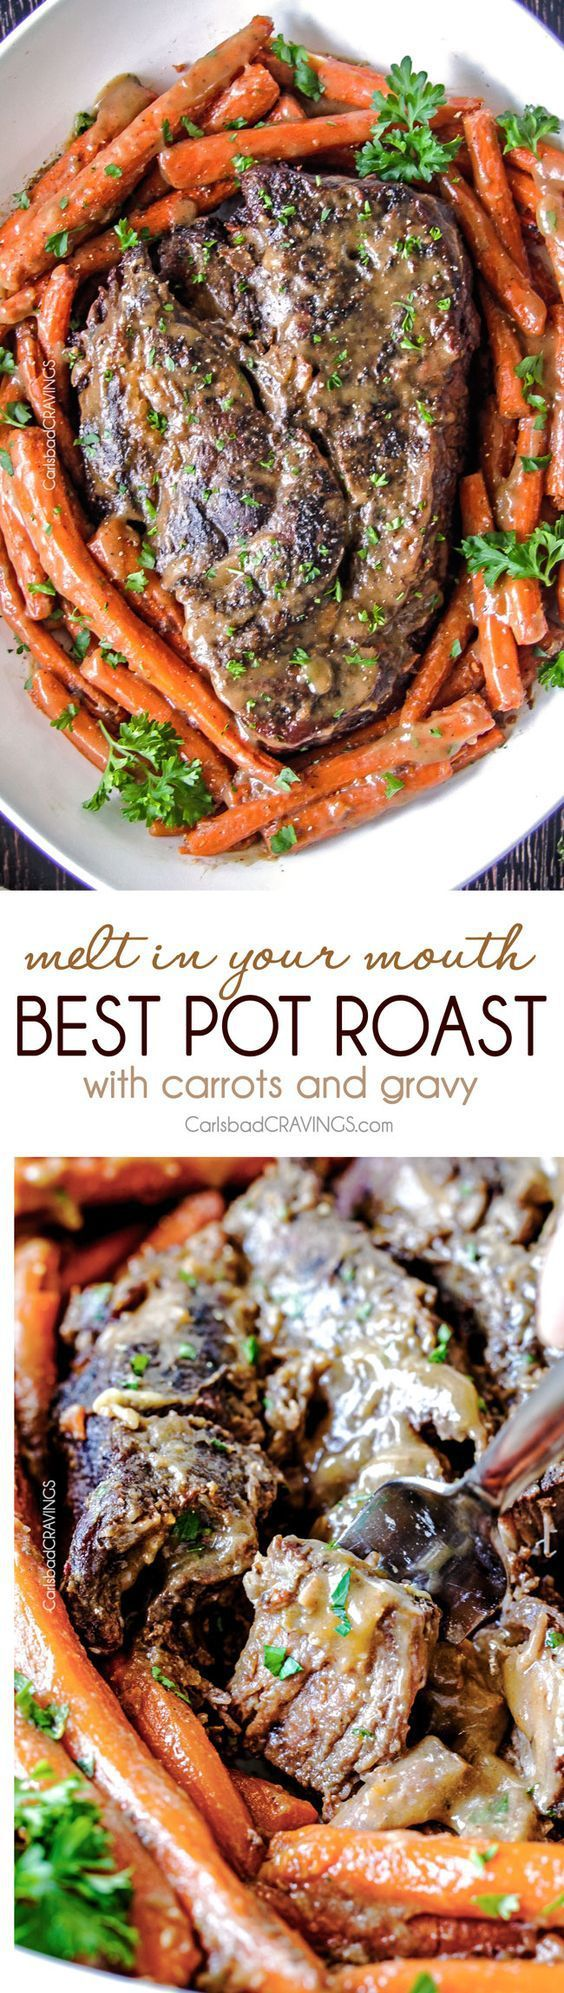 the BEST Melt in Your Mouth Pot Roast and carrots with mouthwatering gravy is the best pot roast I have ever had! Juicy fall apart tender seasoned to PERFECTION with hardly any effort! Amazing for company easy enough for everyday.